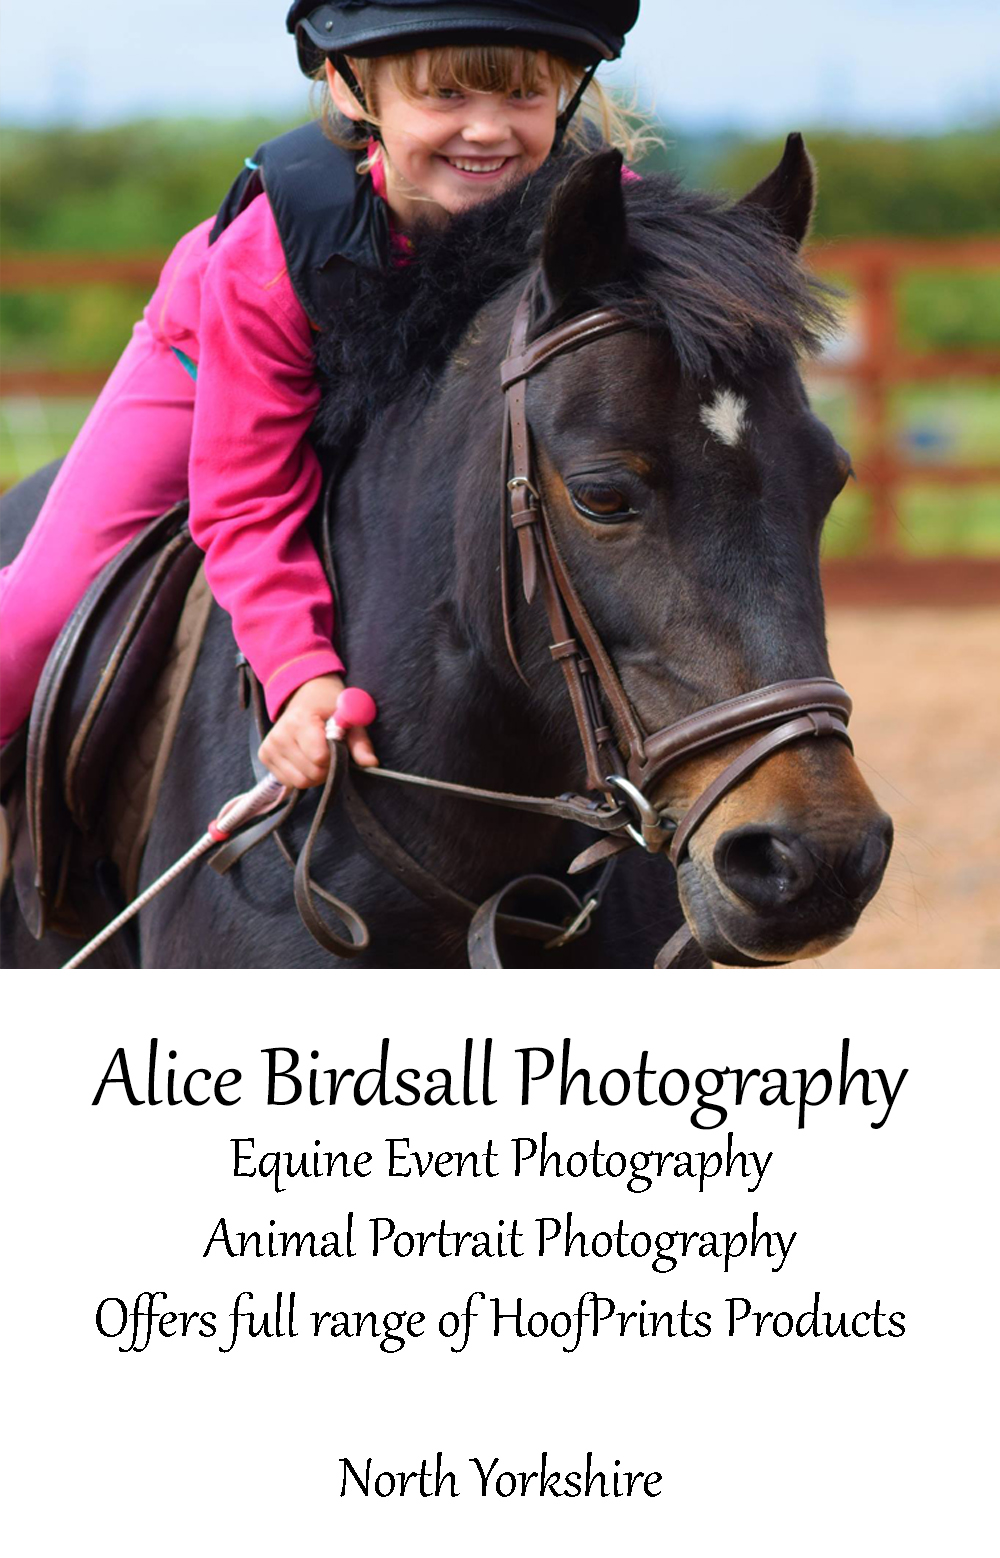 Alice Birdsall Photography - Now Offering a Full Range of HoofPrints Products